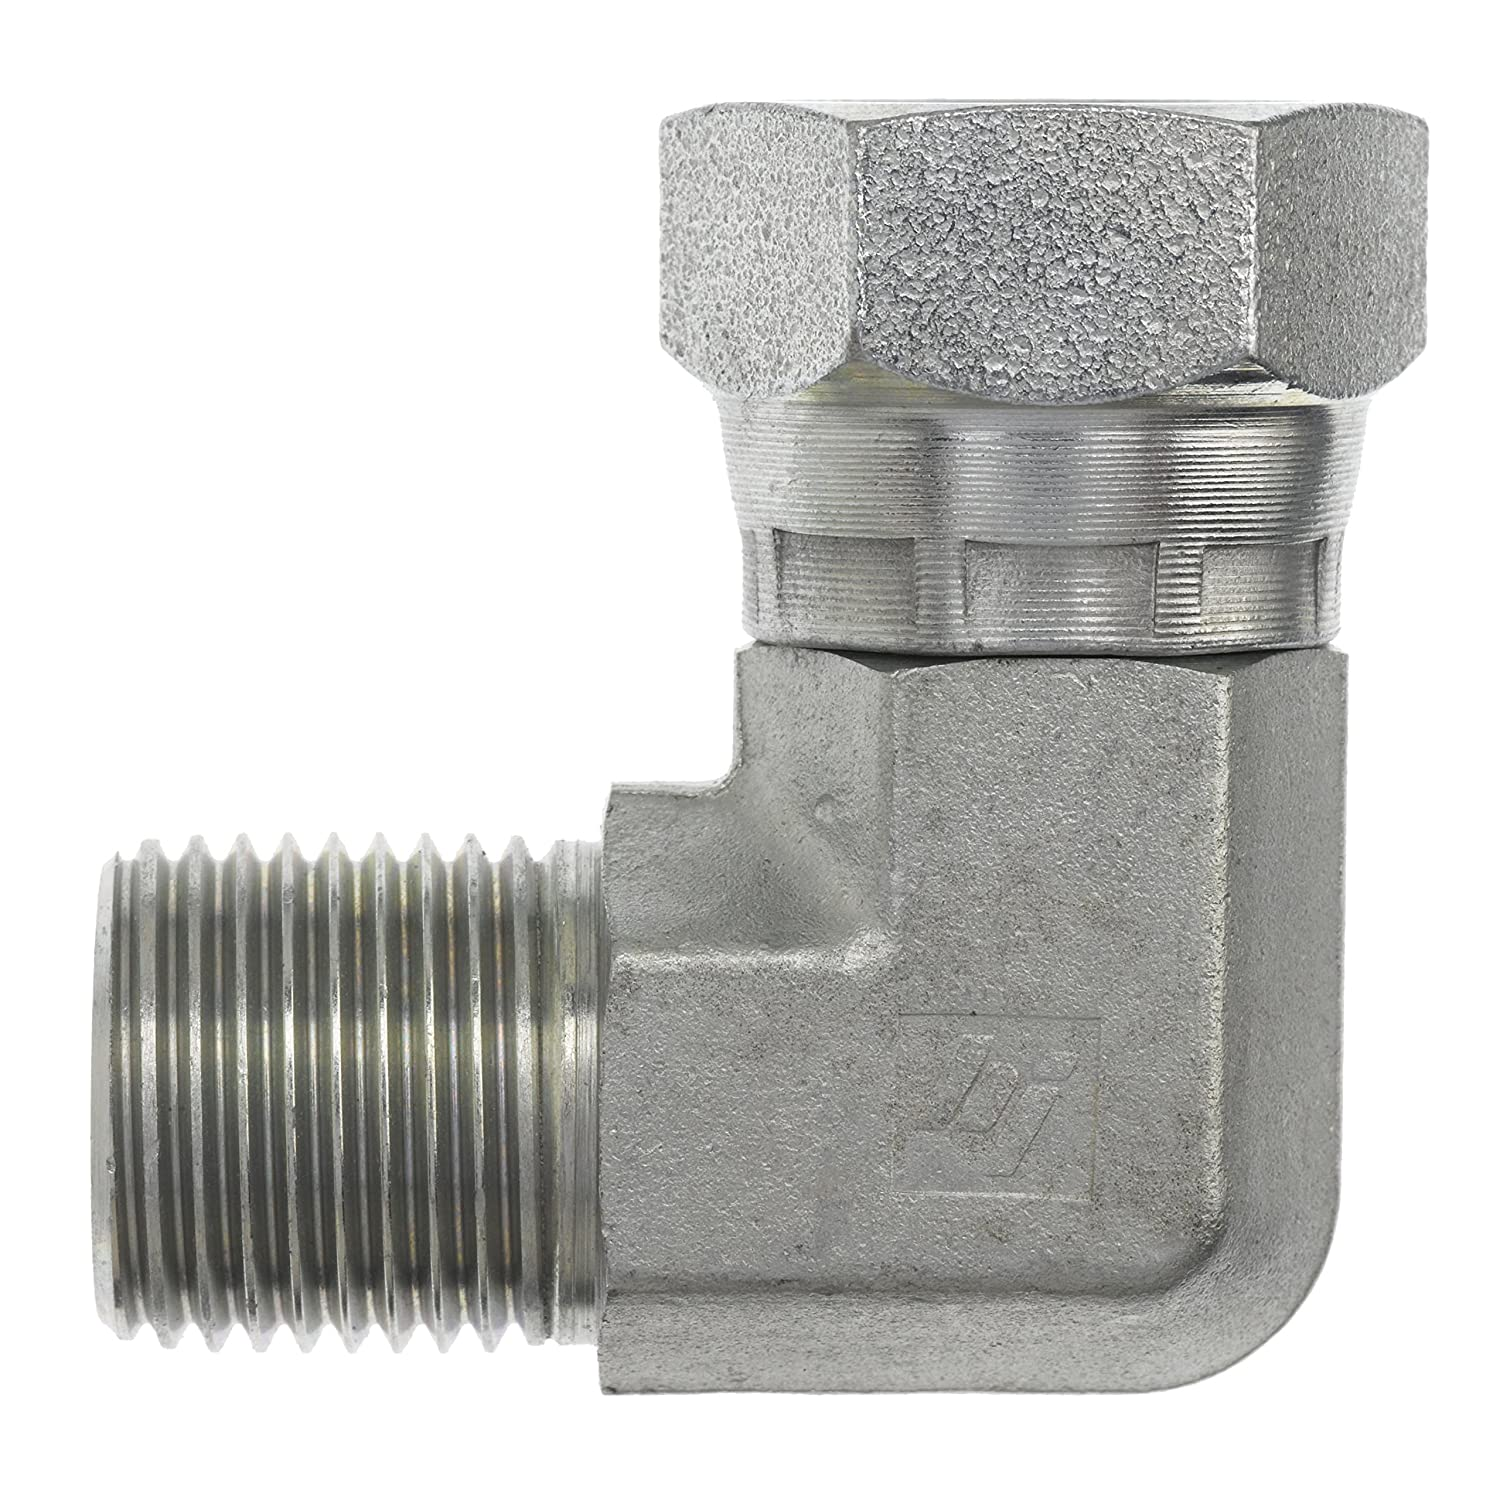 Gas Qty 05 WOG Water AIR Oil EDGE INDUSTRIAL 5//8 Hose ID to 3//8 Male NPT MNPT 90 Degree Elbow Brass Fitting Fuel